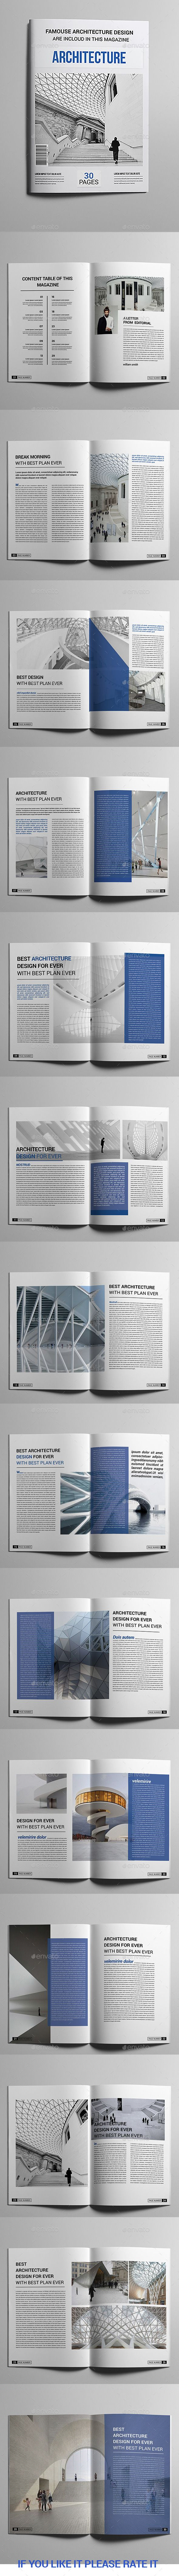 Architecture Magazine Template #design Download: http://graphicriver.net/item/architecture-magazine-design-/13642789?ref=ksioks